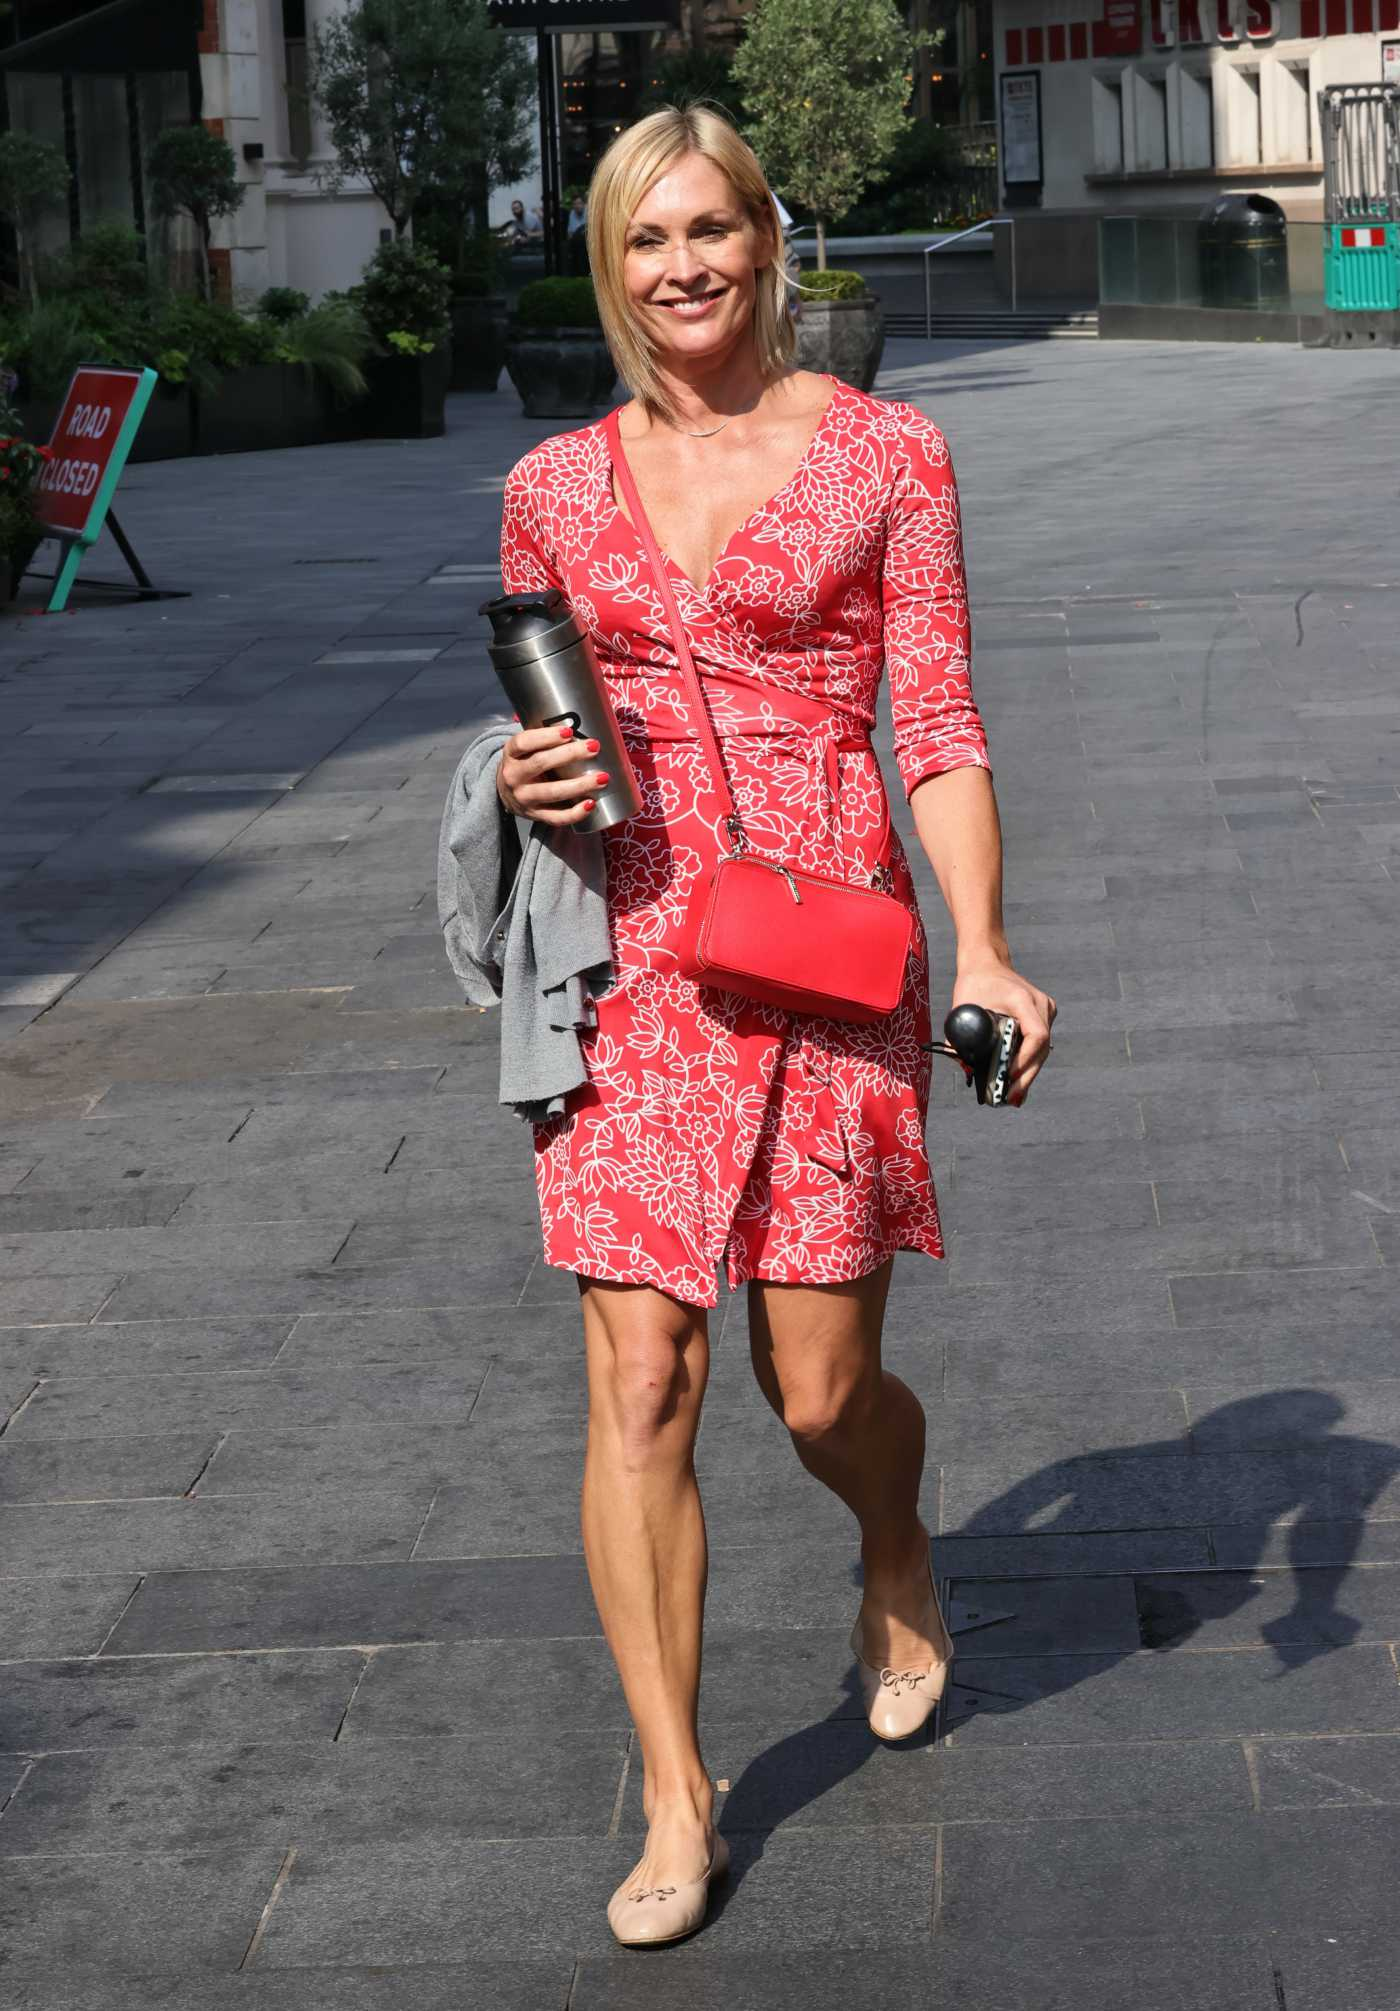 Jenni Falconer in a Red Summer Dress Arrives at the Smooth Radio in London 08/13/2020